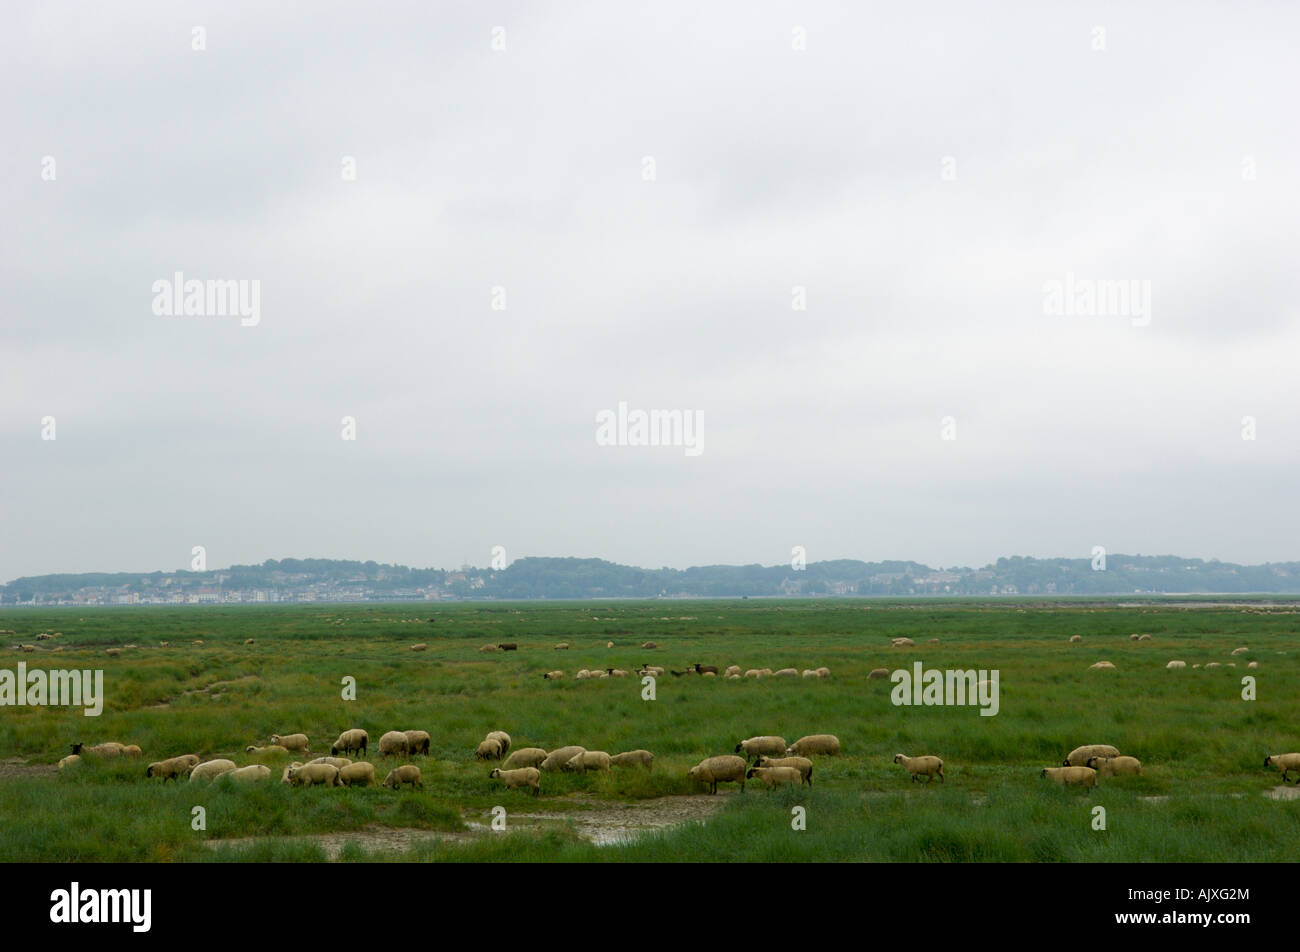 Sheep grazing Bay of the Somme, Picardy, France Stock Photo